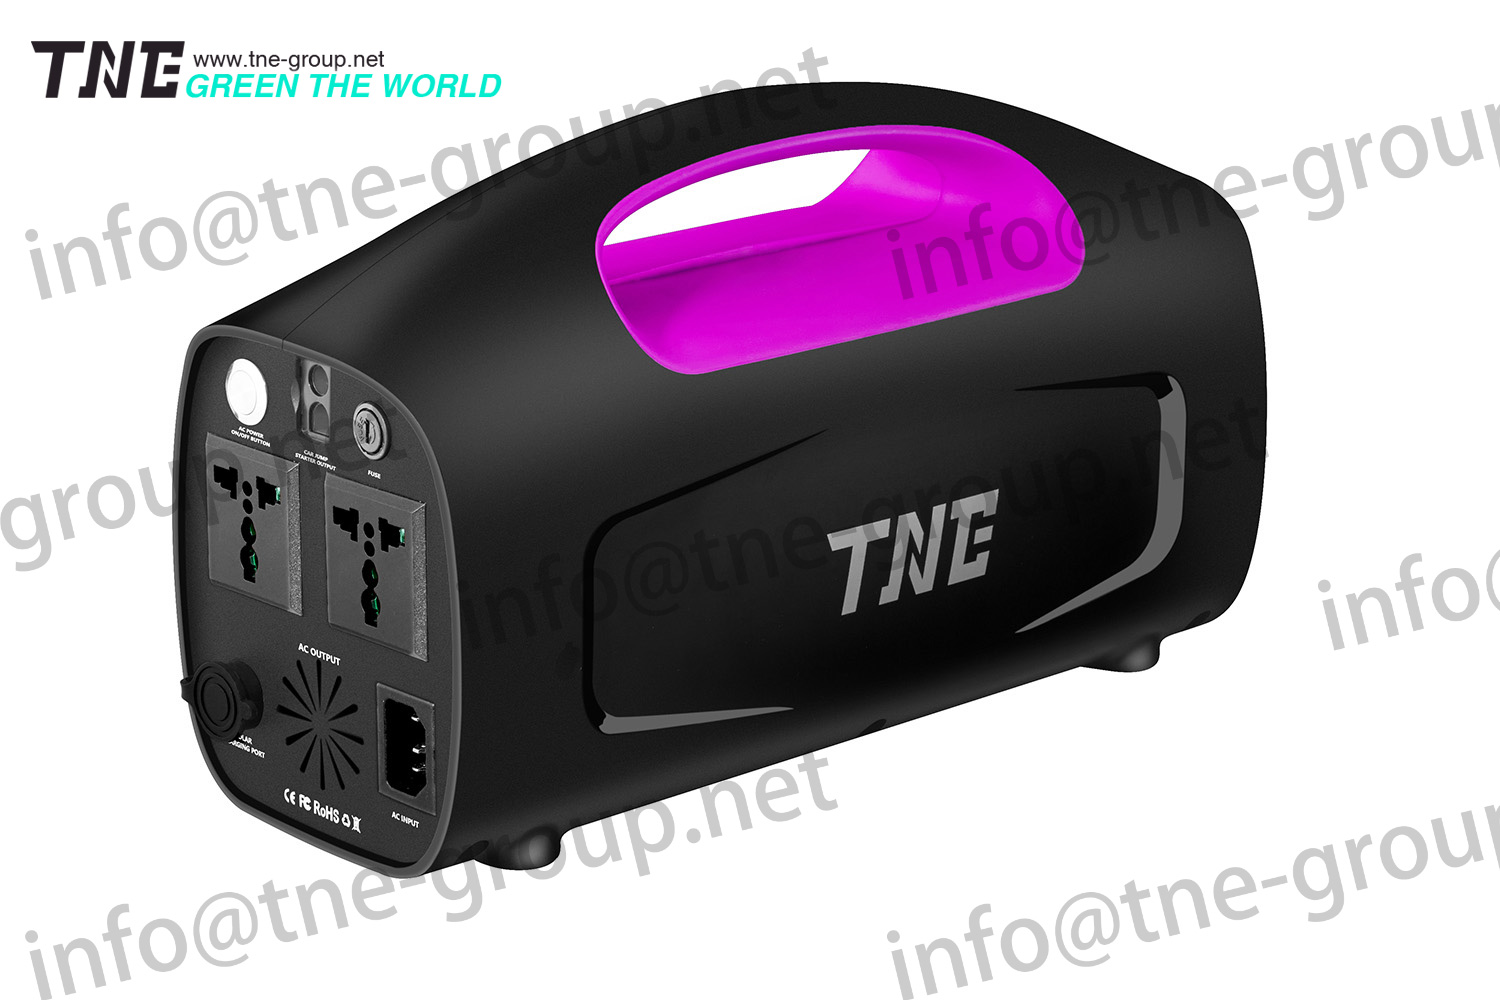 TNE Consumer electronics USB portable charger ups for mobil phone